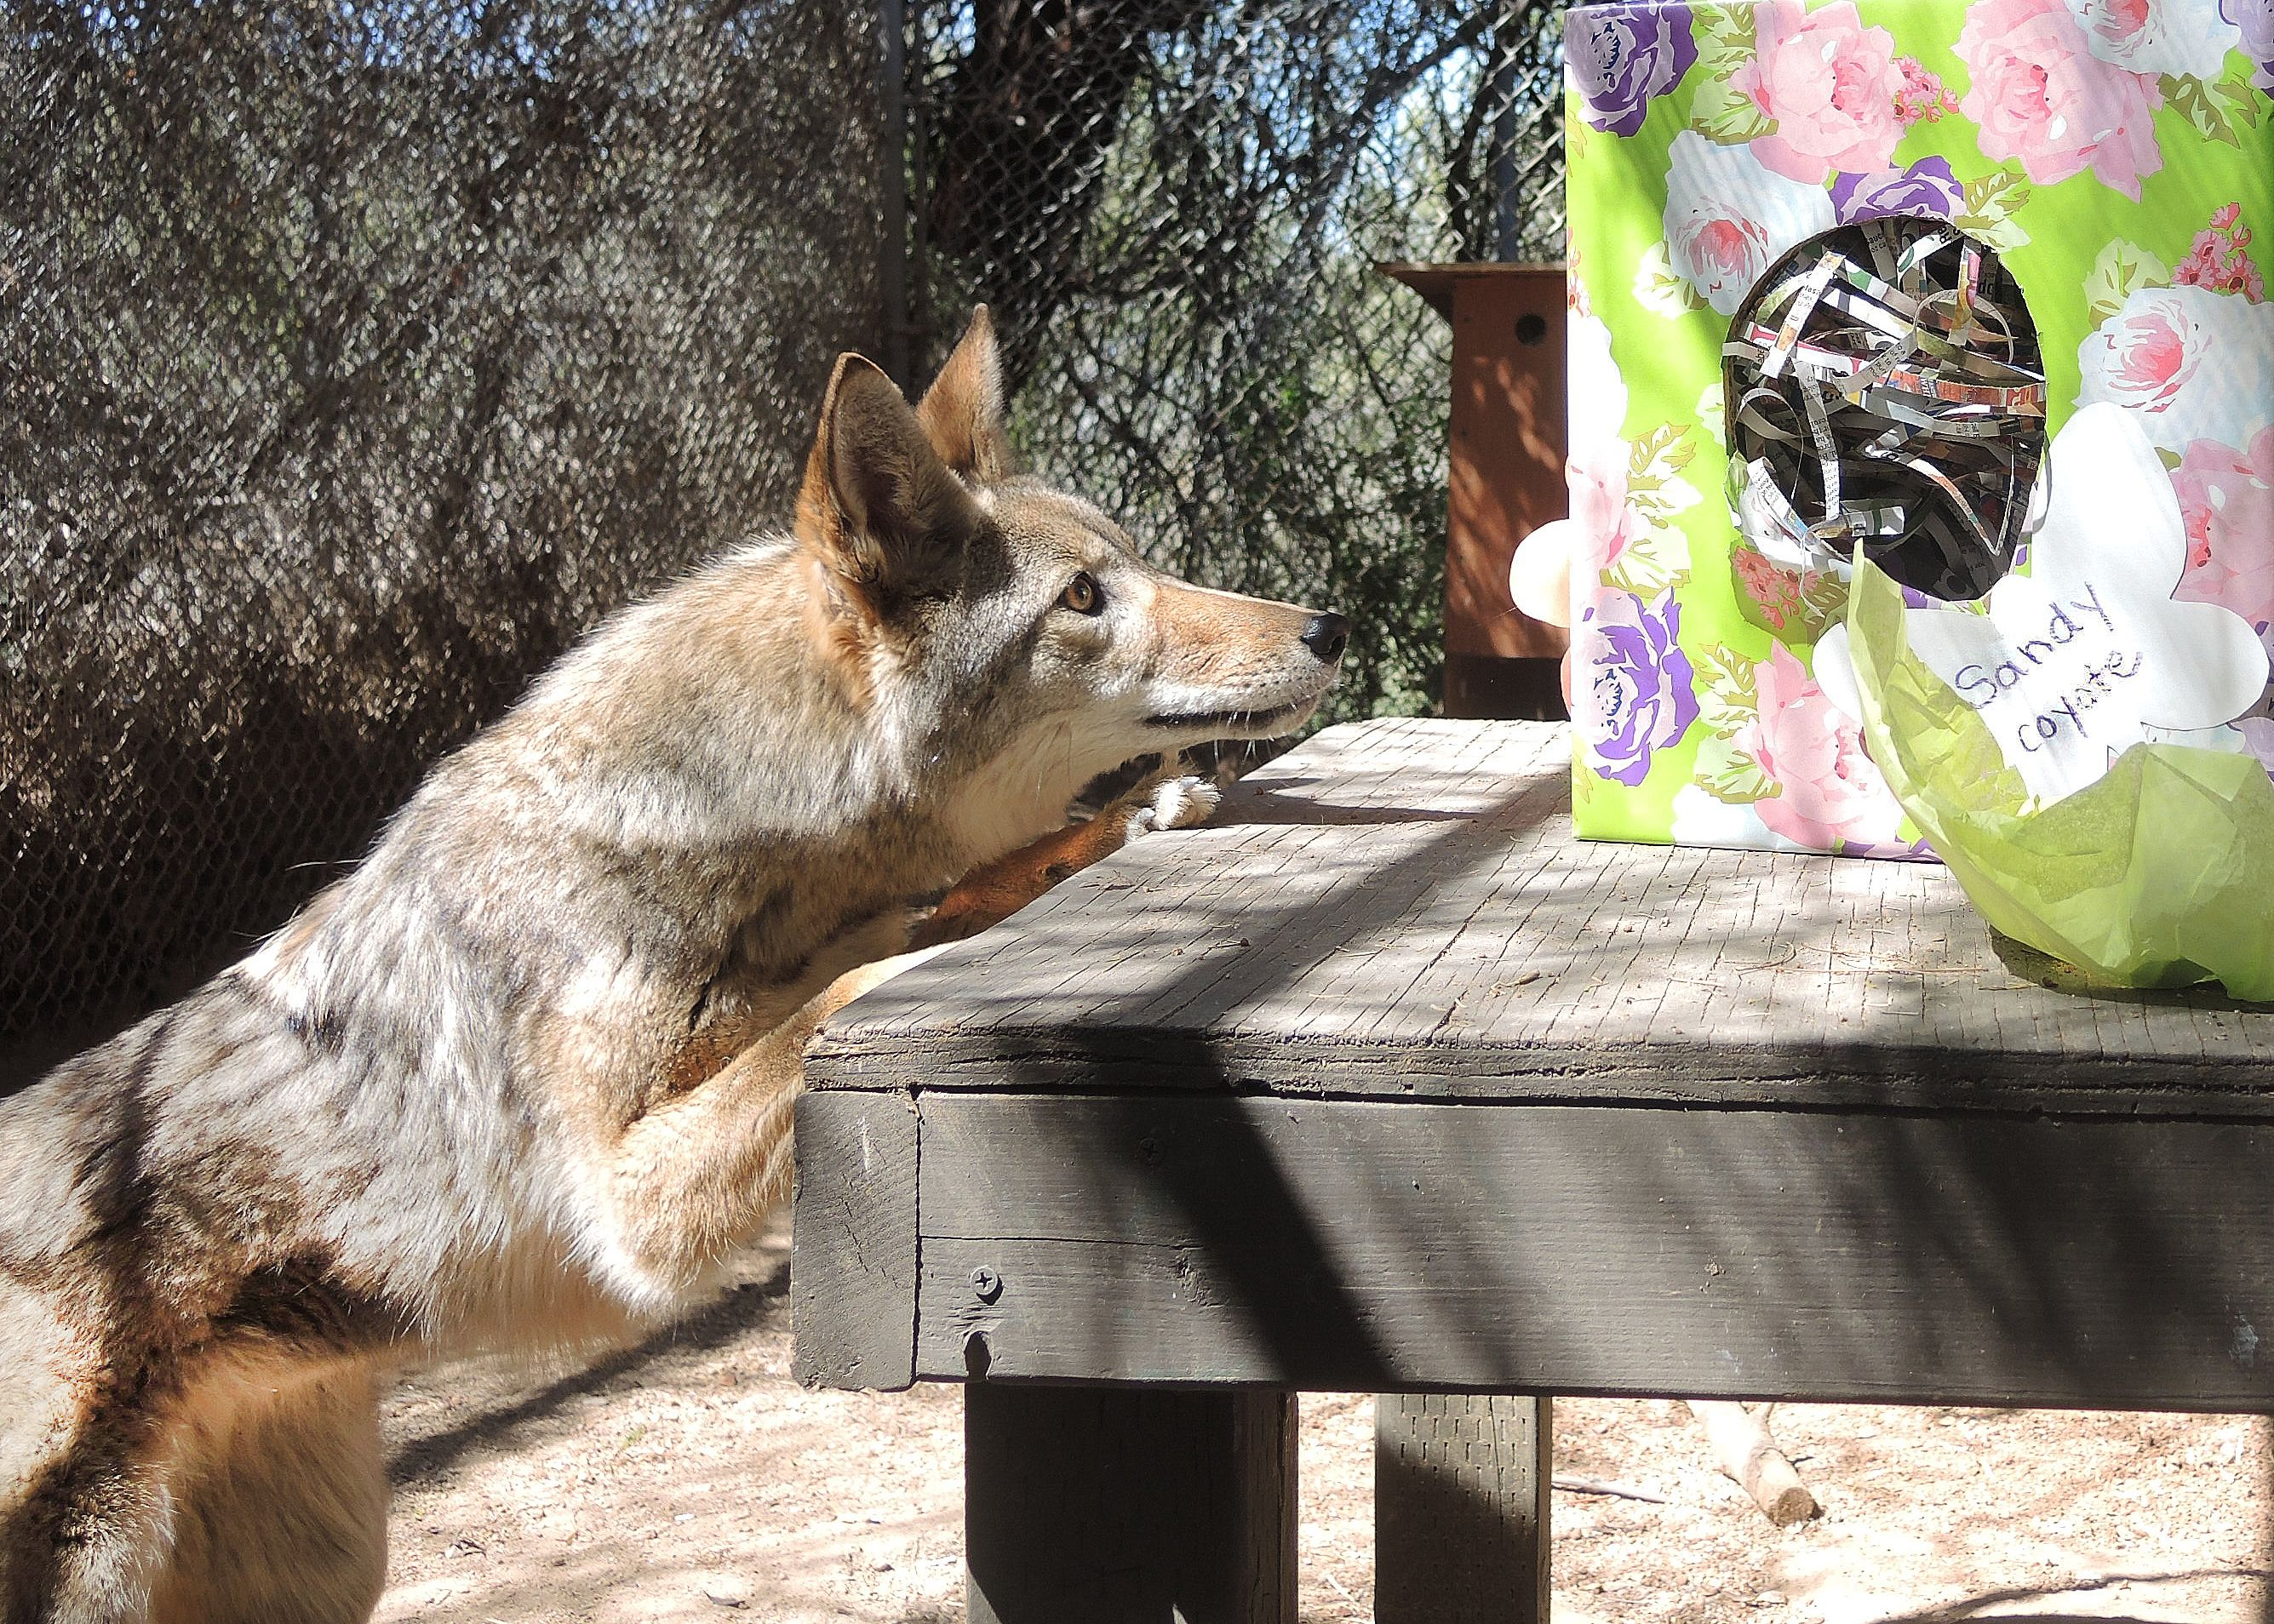 Sandy the coyote enjoying some enrichment! Wild animal